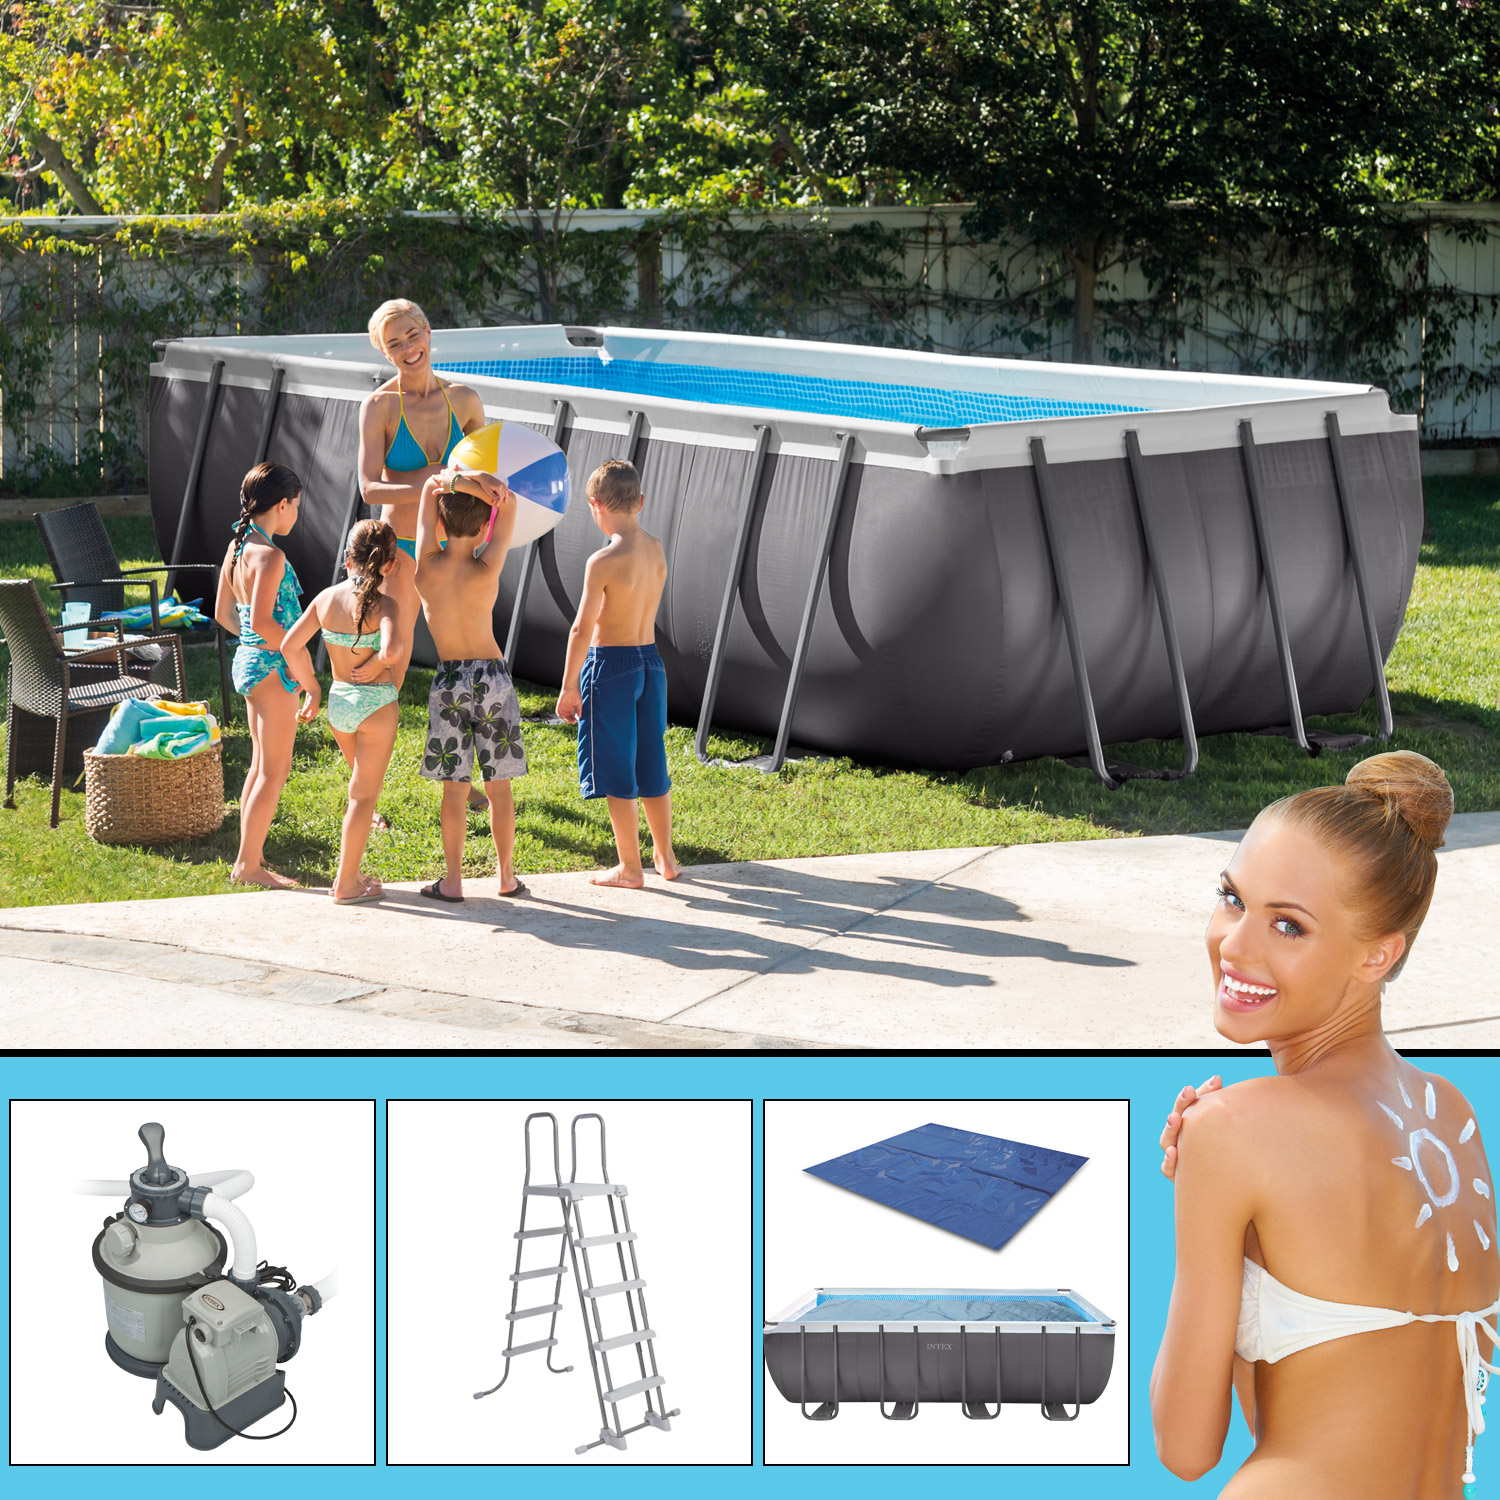 Solarfolie Für Pool Intex Swimming Pool Frame 549x274x132cm Mit Sandfilter